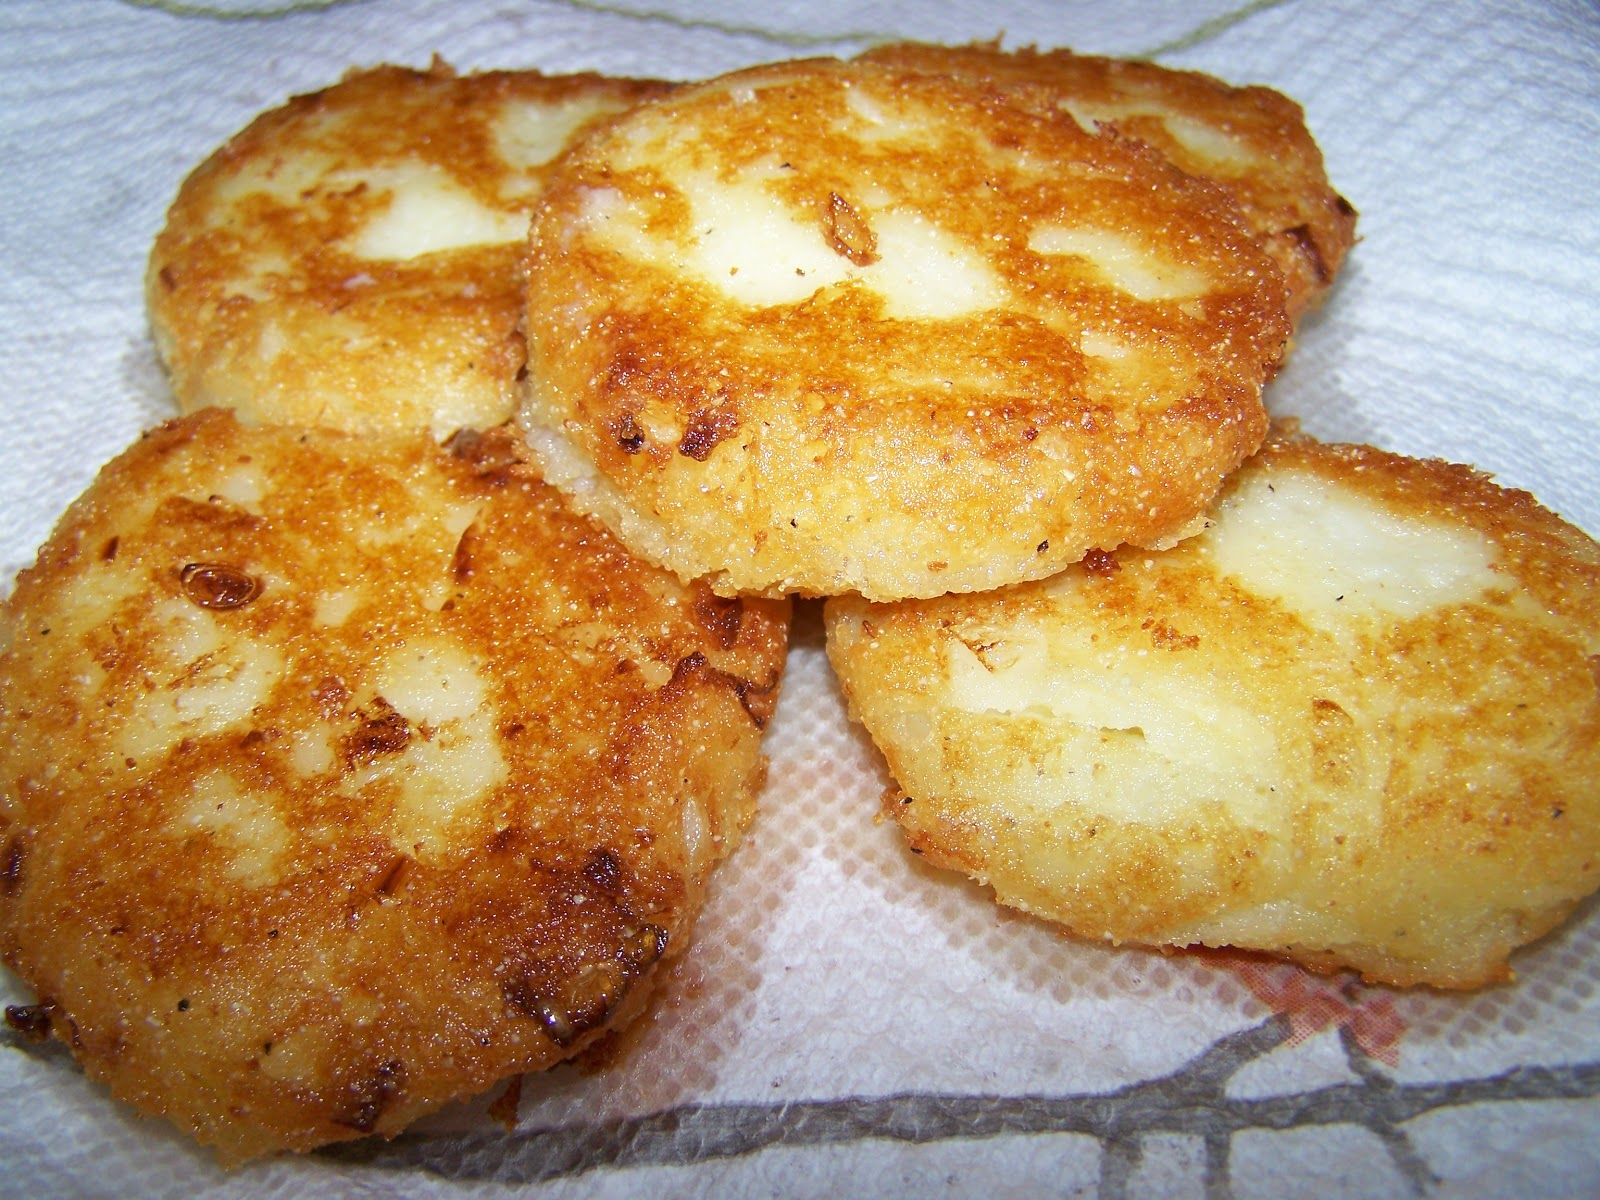 ... That Stuff Is Good!: Fried Potato Cakes Using Leftover Mashed Potatoes